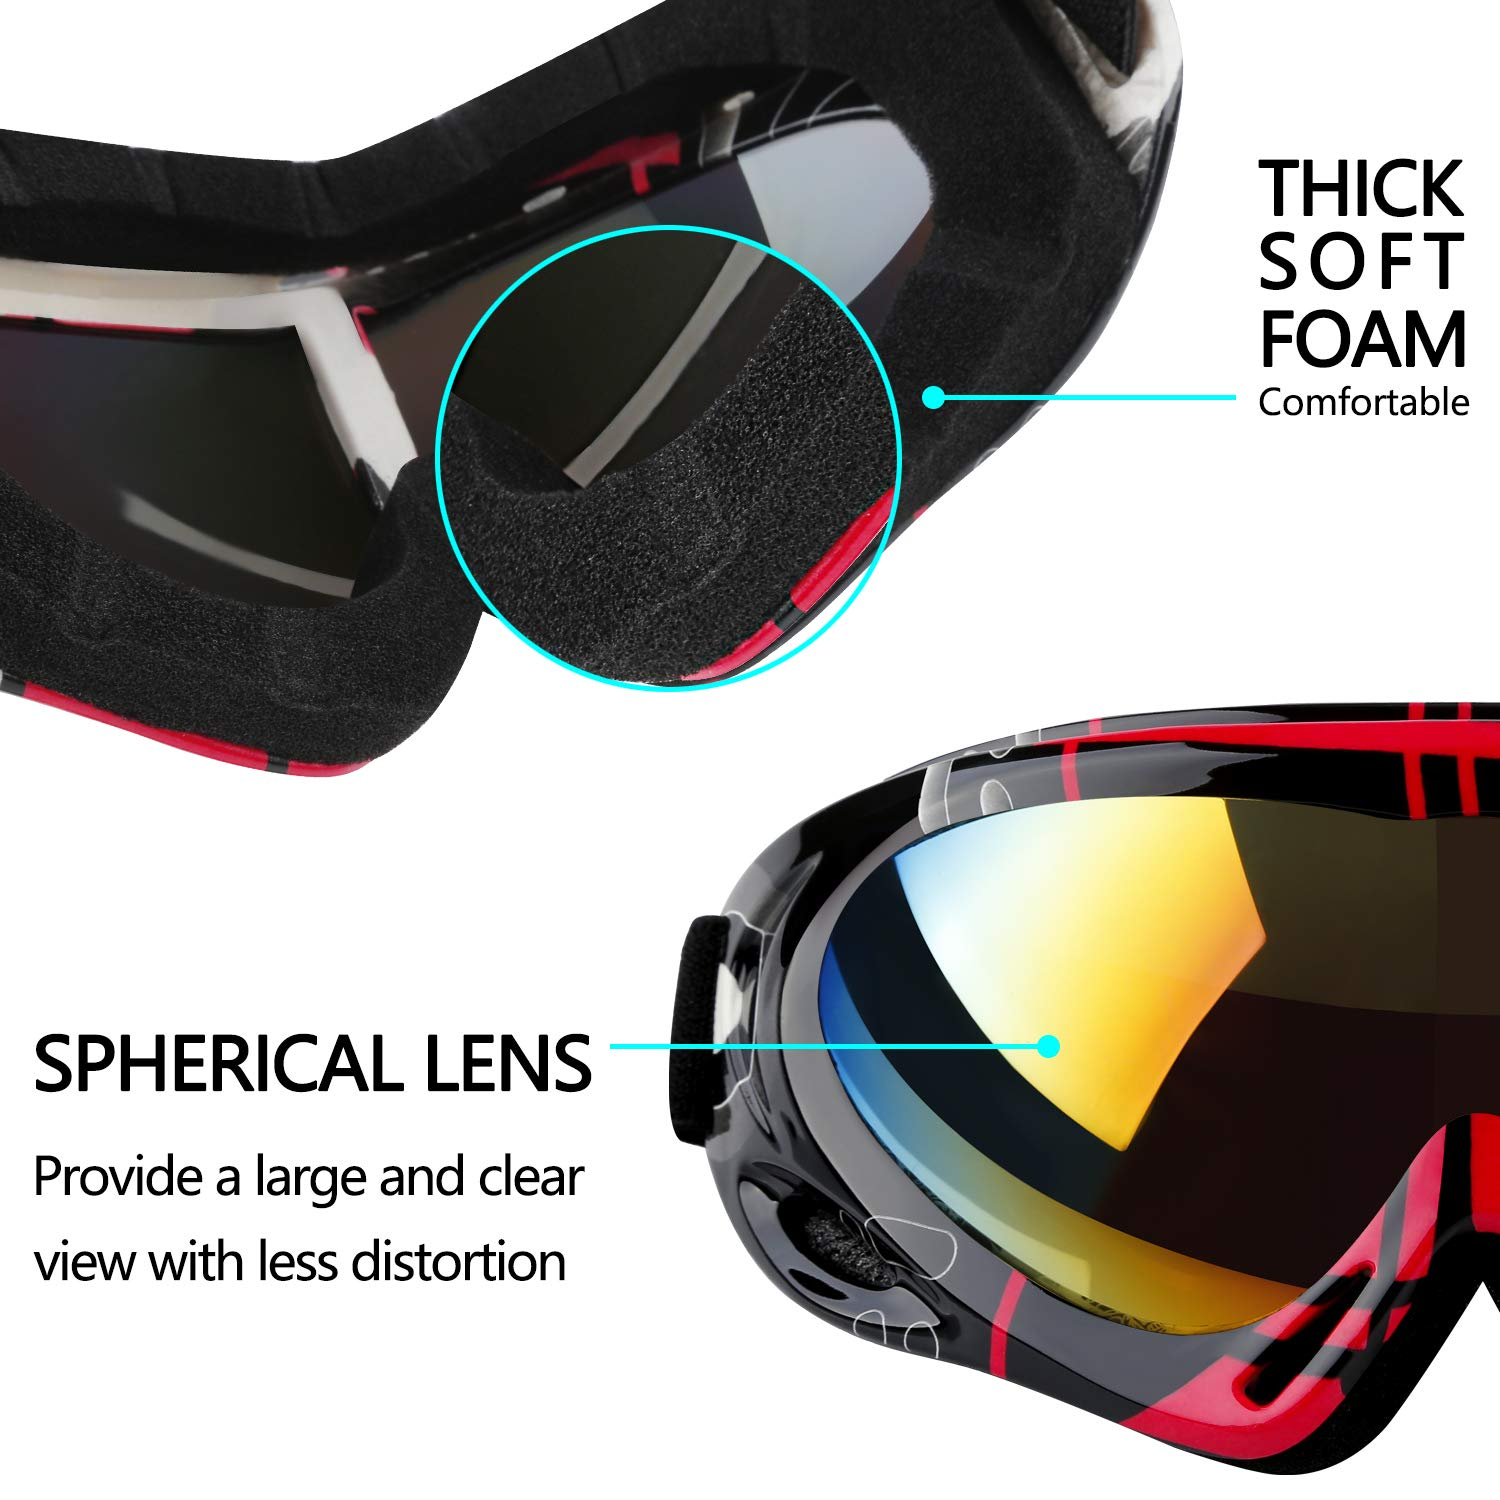 Upgraded Edition 2-Pack Snowboard Goggles for Kids Youth Helmet Compatible Snow Goggles with UV 400 Protection Wind Resistance Men /& Women Anti-Glare Lenses Elimoons Ski Goggles Boys /& Girls